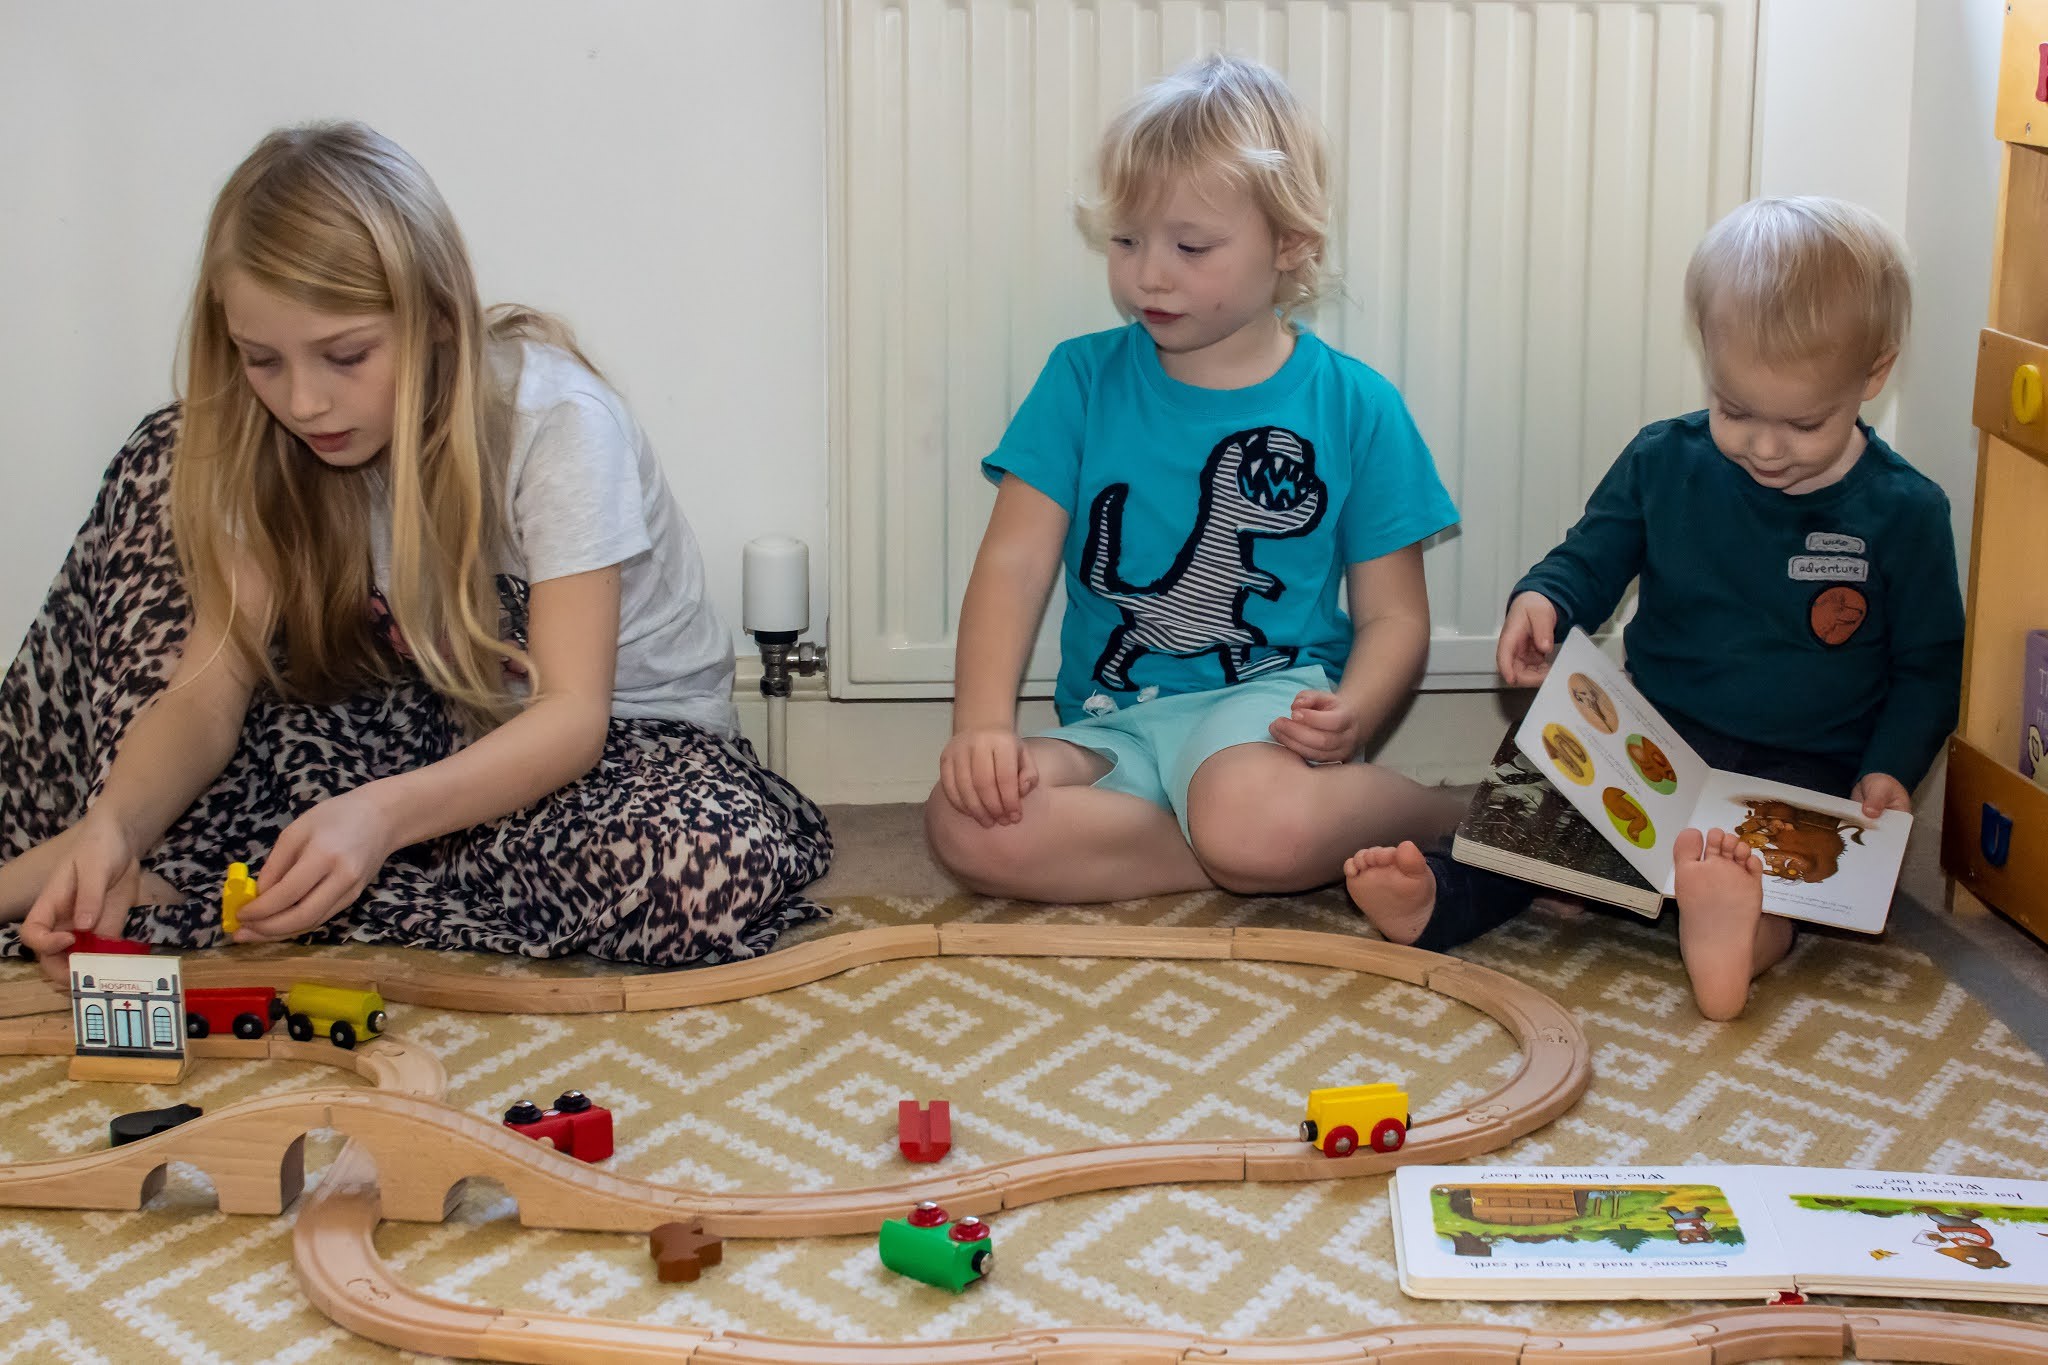 3 children playing in front of a radiator with a hive heating thermostat valve, 2 are playing with a wooden train track and one is reading a book